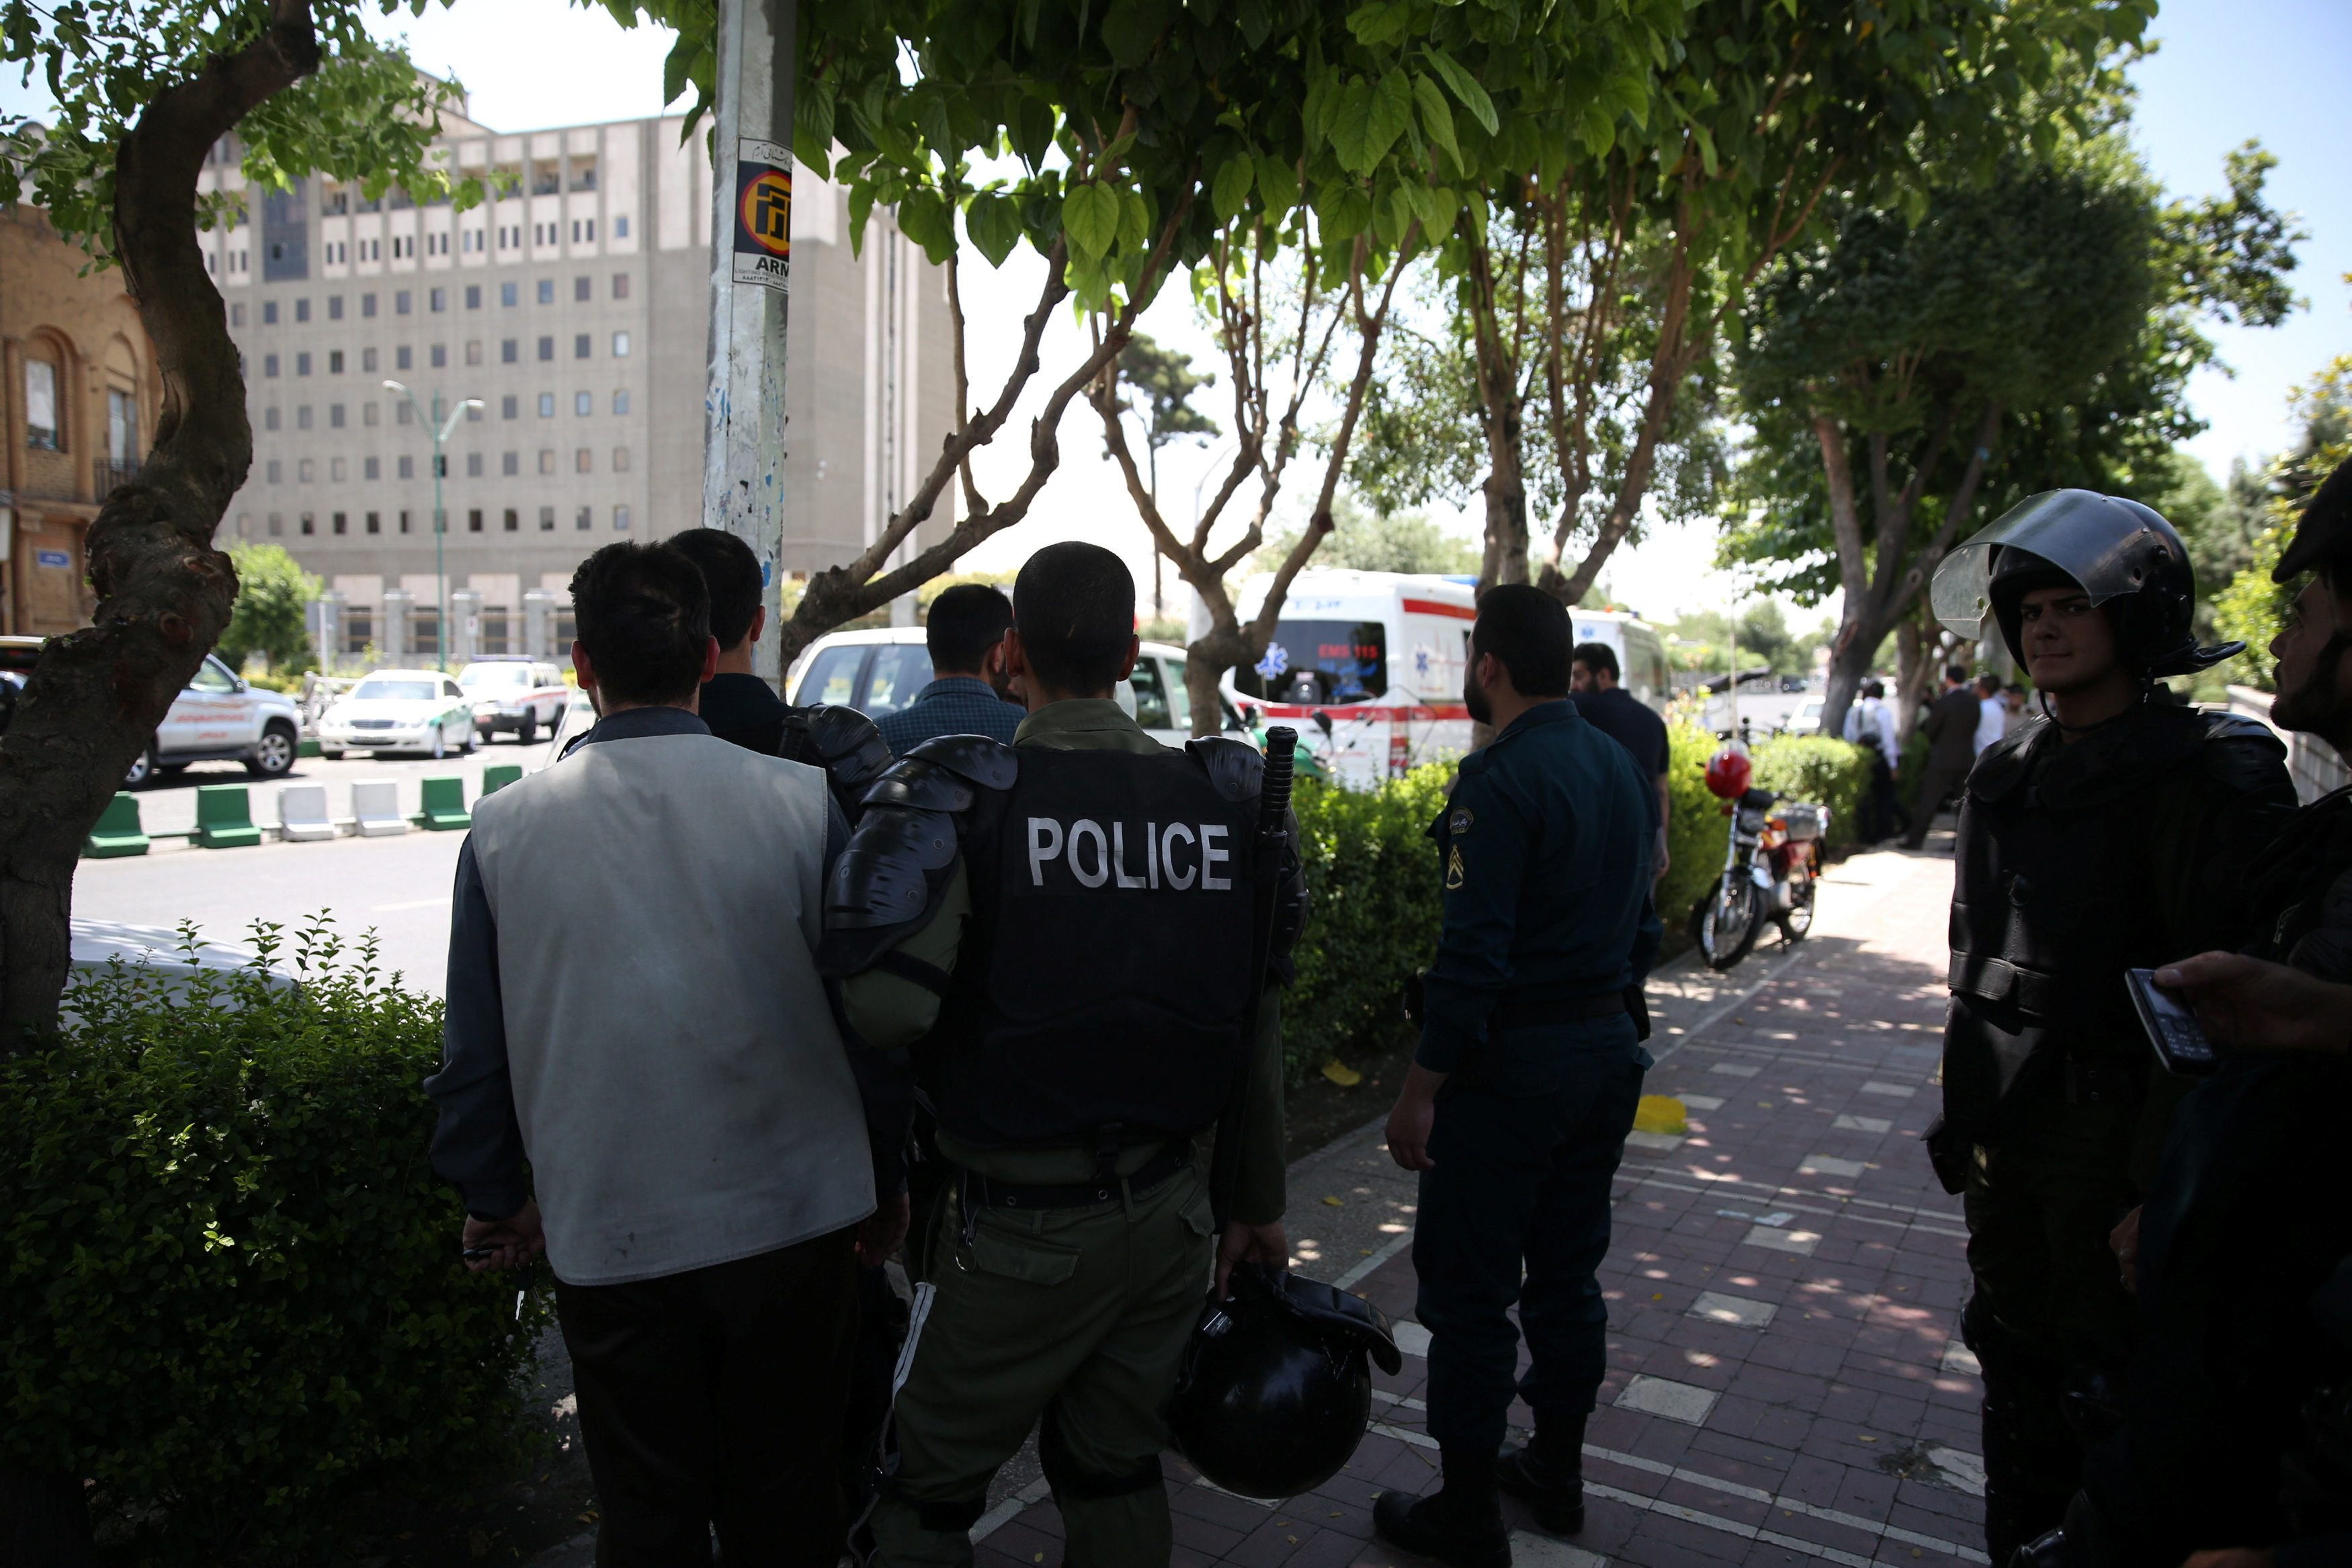 Iranian police stand near the parliament's building during a gunmen attack in central Tehran, Iran, June 7, 2017. TIMA via REUTERS ATTENTION EDITORS - THIS IMAGE WAS PROVIDED BY A THIRD PARTY. FOR EDITORIAL USE ONLY.